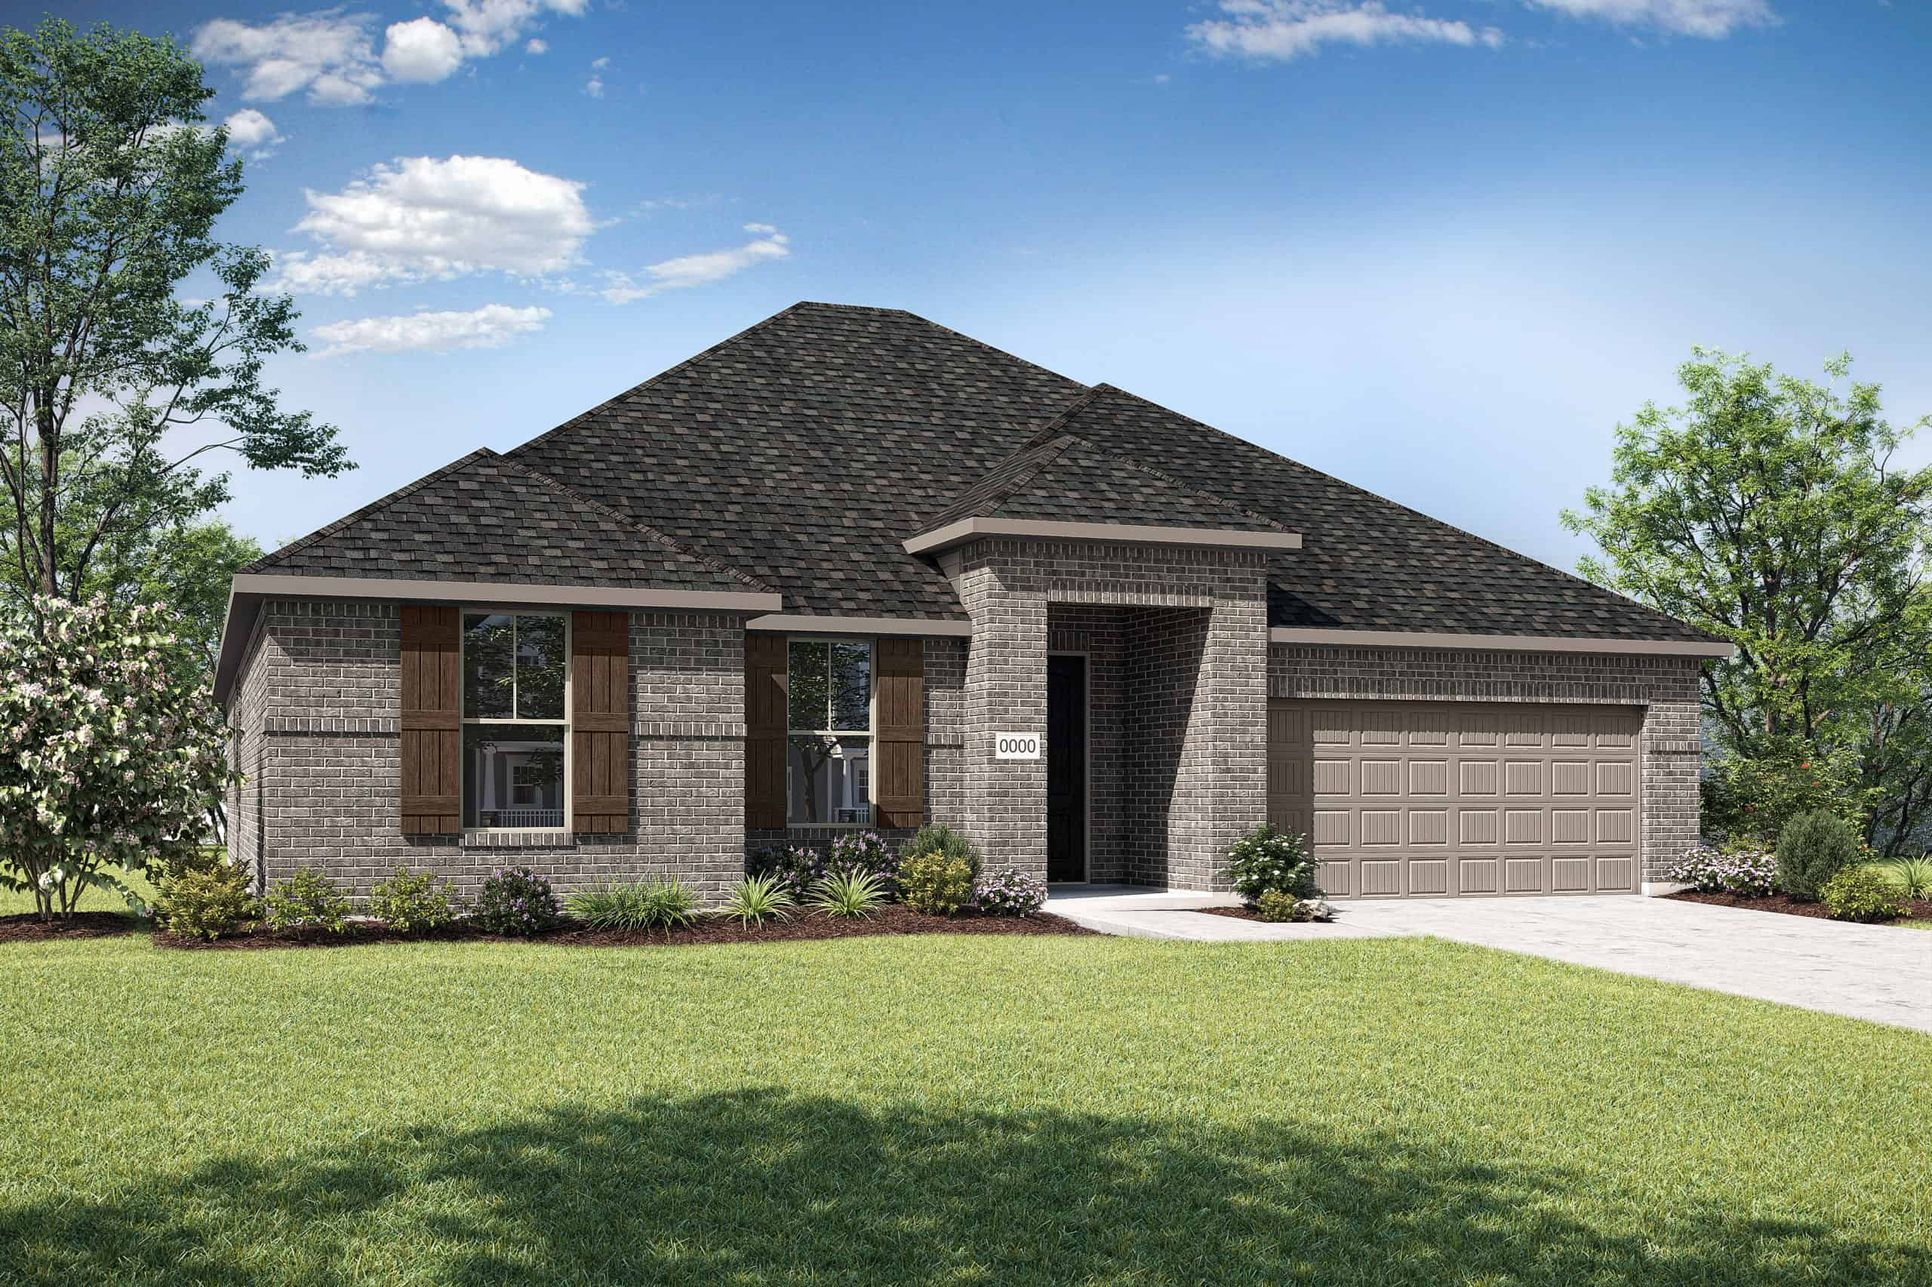 Elevation A:Elevation A is a single story full brick home design with clean lines and shutters on the front wind